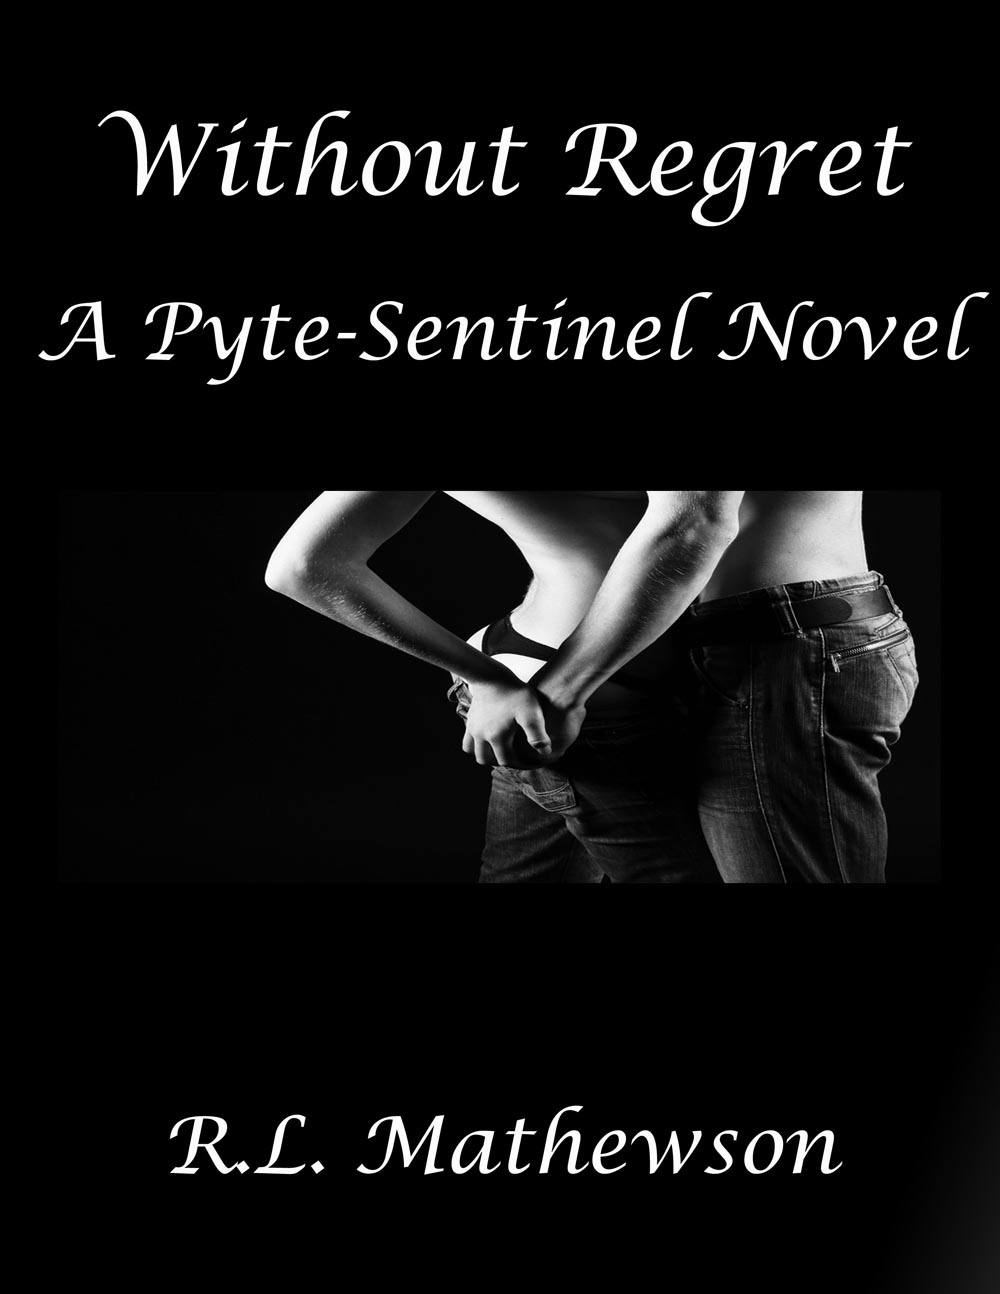 Without Regret: A Pyte/Sentinel Series Novel By: R.L. Mathewson